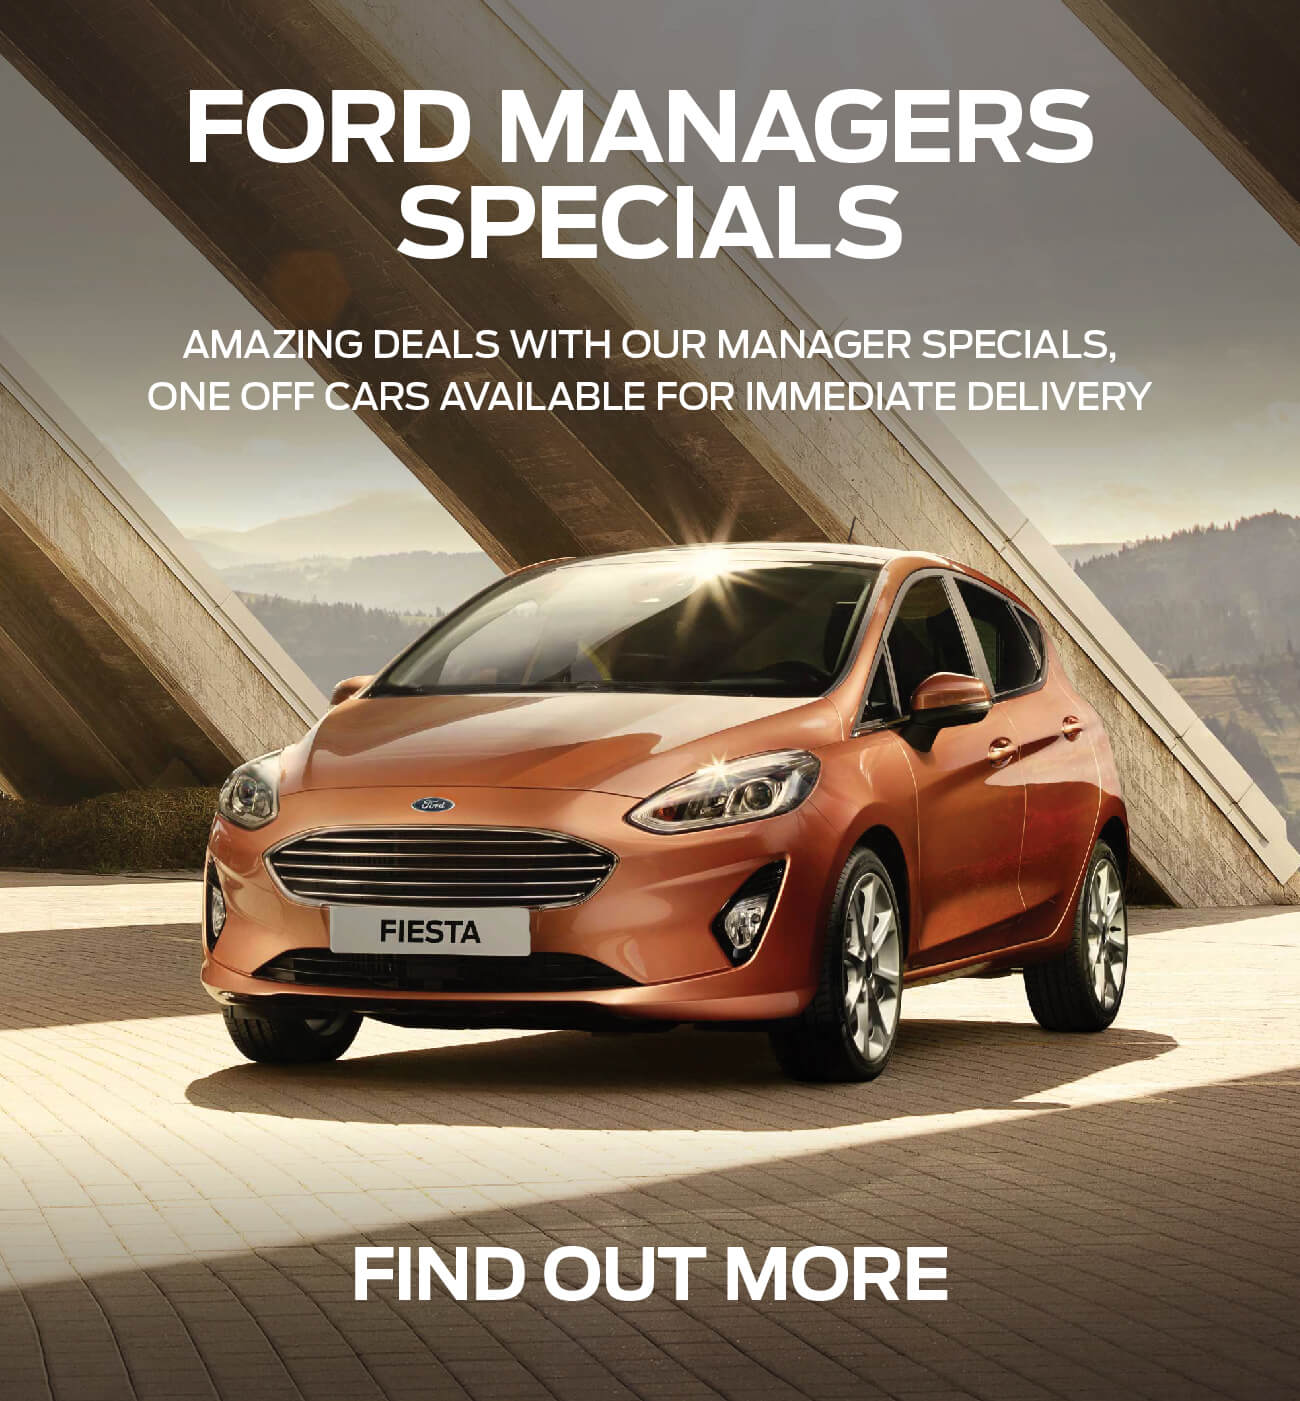 Ford Managers Specials